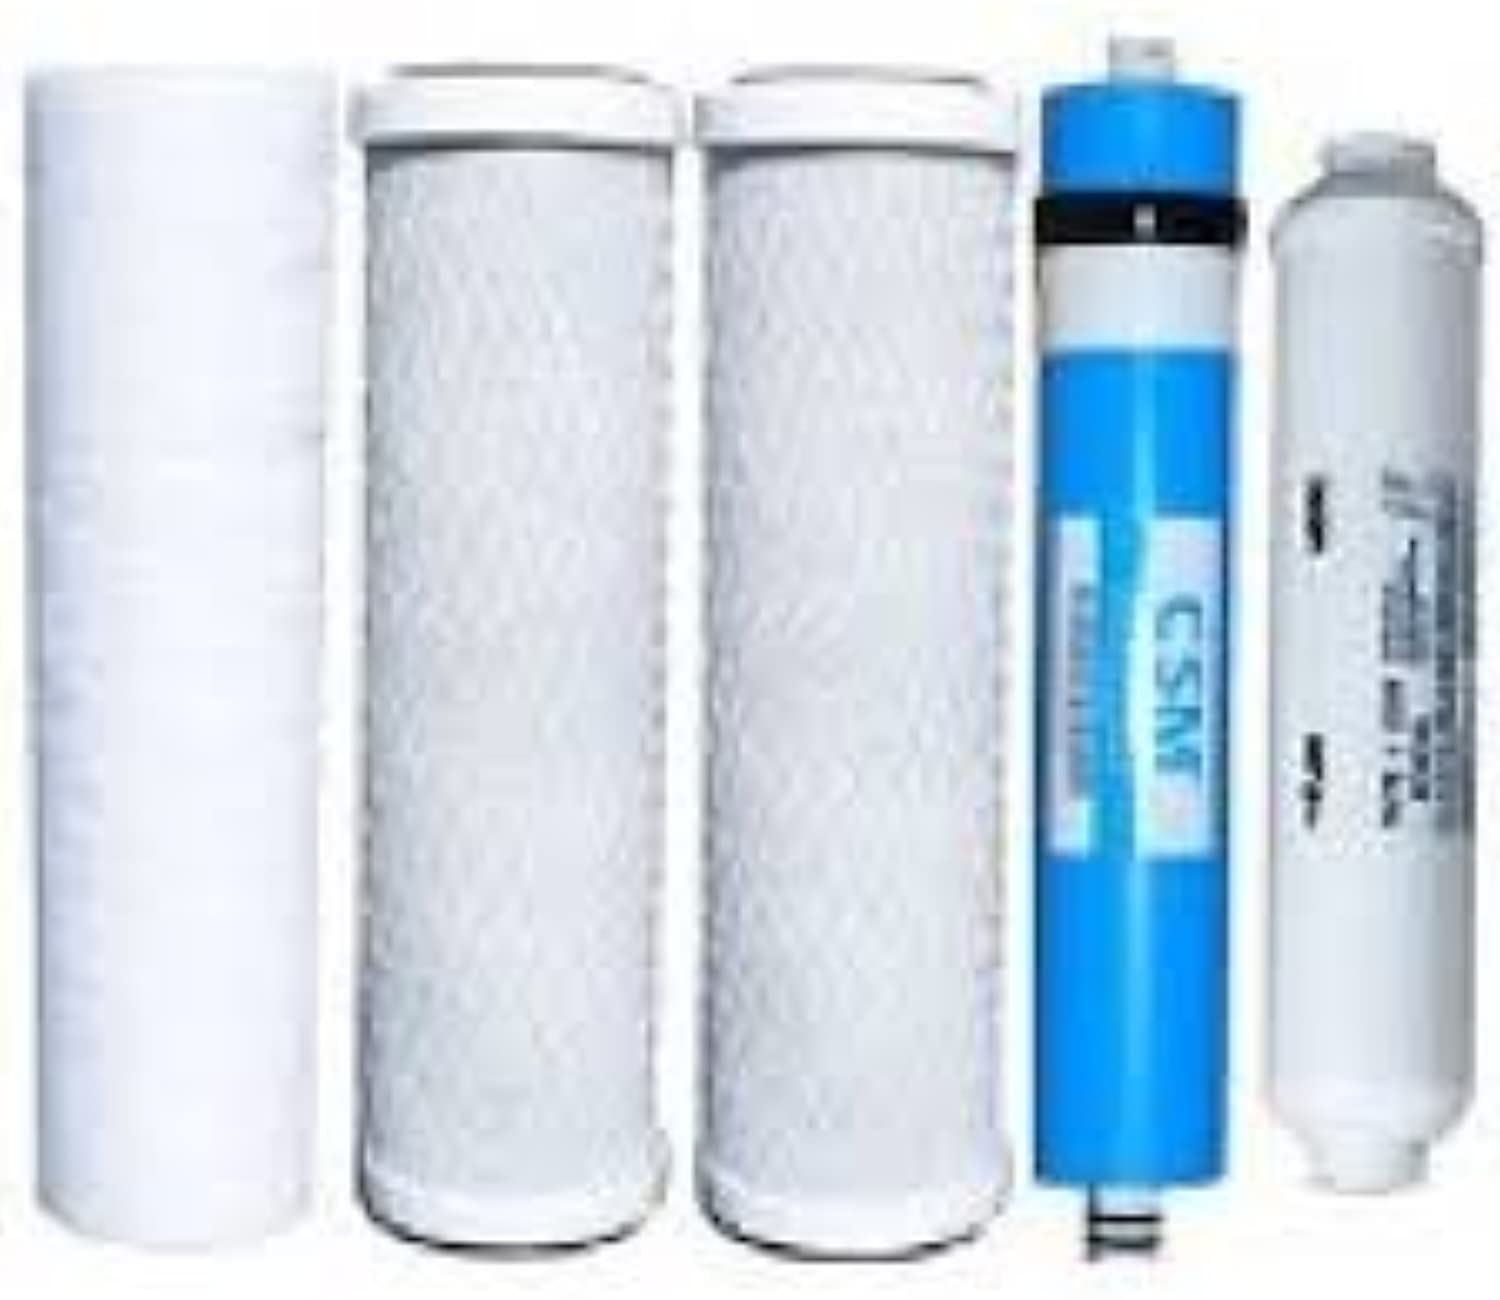 Compatible goldline 50 GPD Retro Fit Reverse Osmosis System Five filters and RO membrane included by CFS